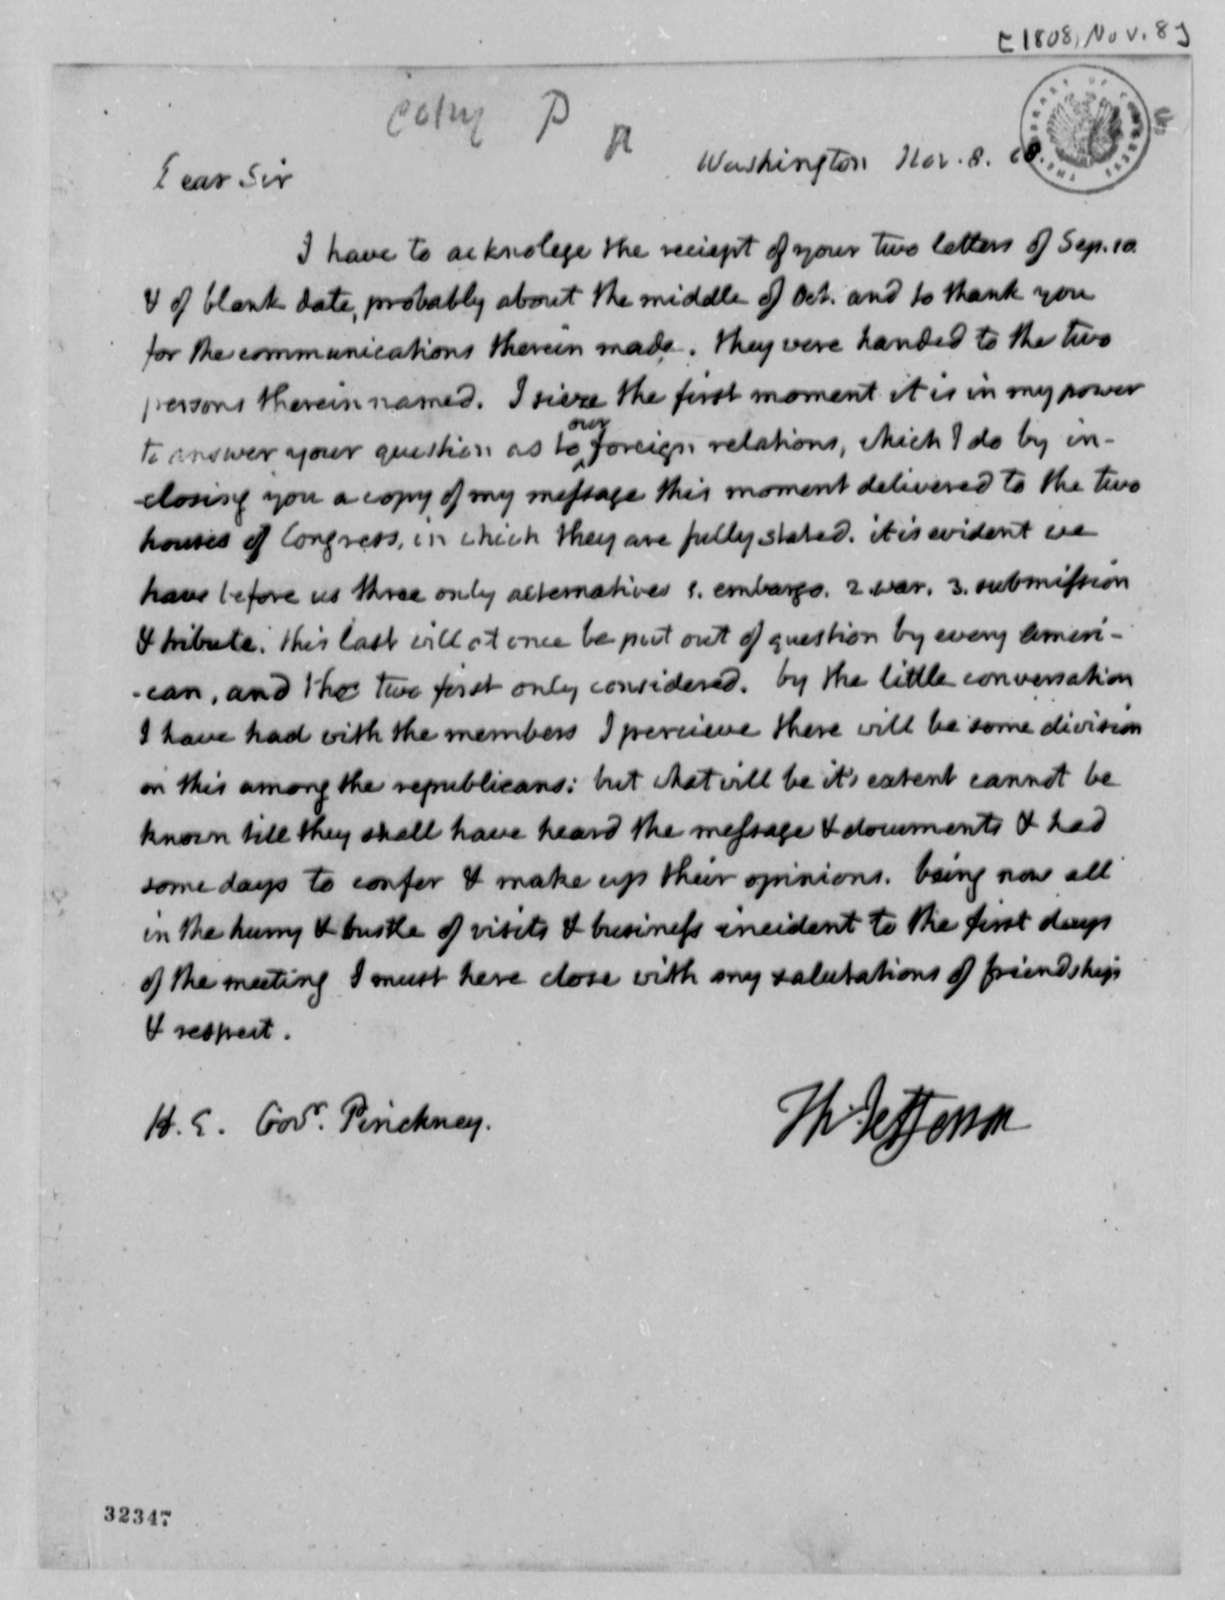 Thomas Jefferson to Charles Pinckney, November 8, 1808